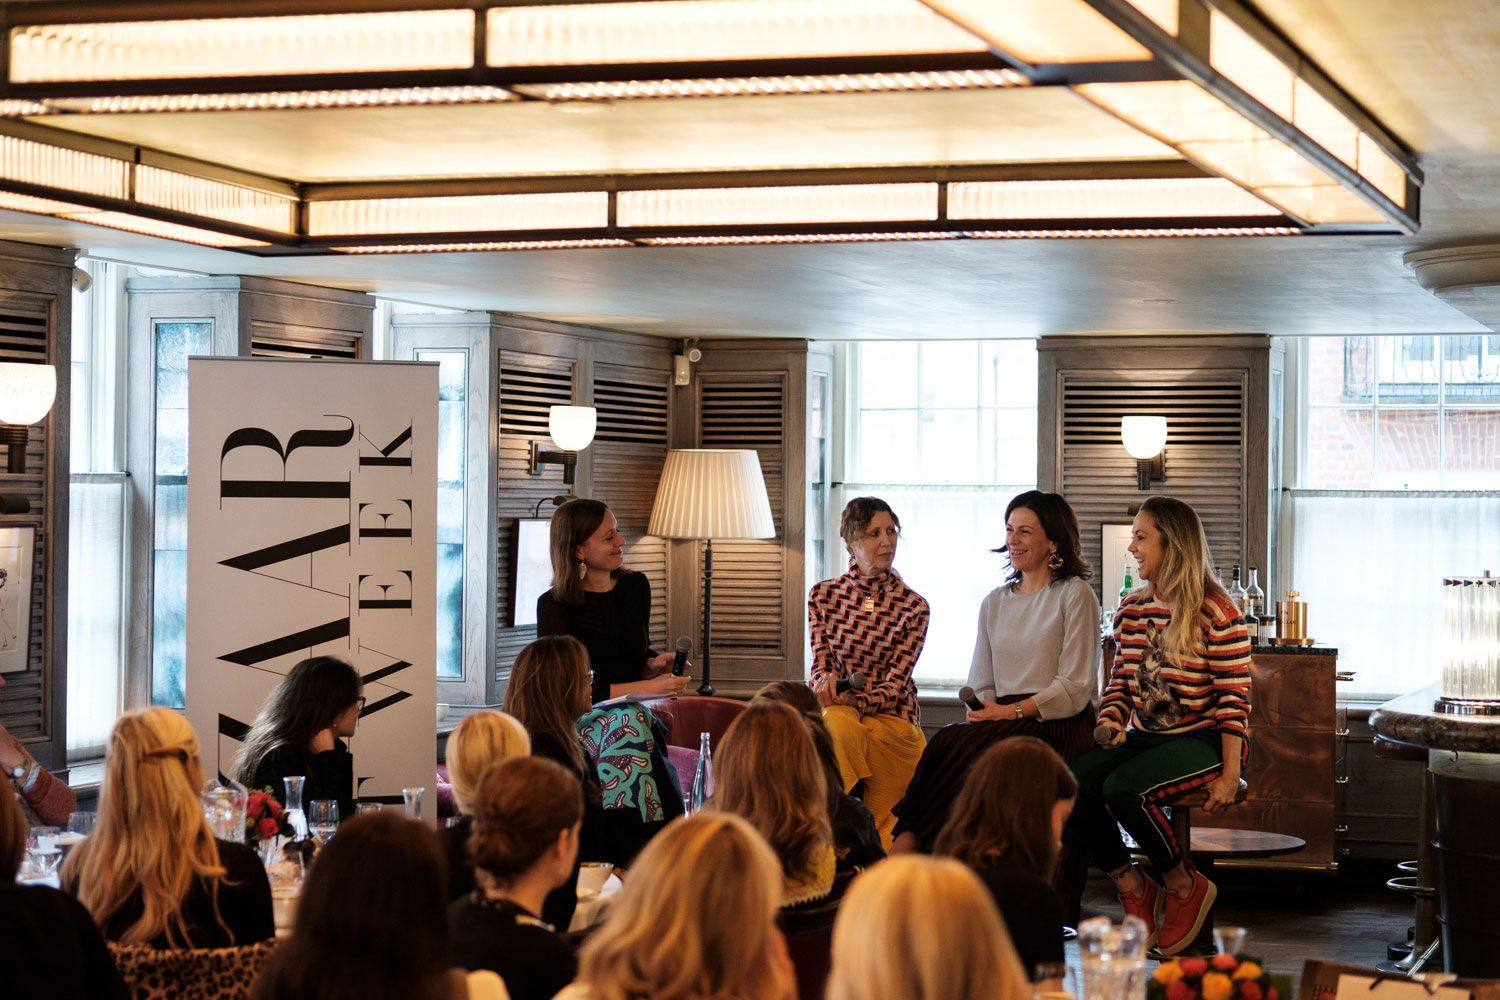 Frances Hedges, Valeria Napoleone, Martina Batovic and Lisa Schiff in conversation at 34 Mayfair